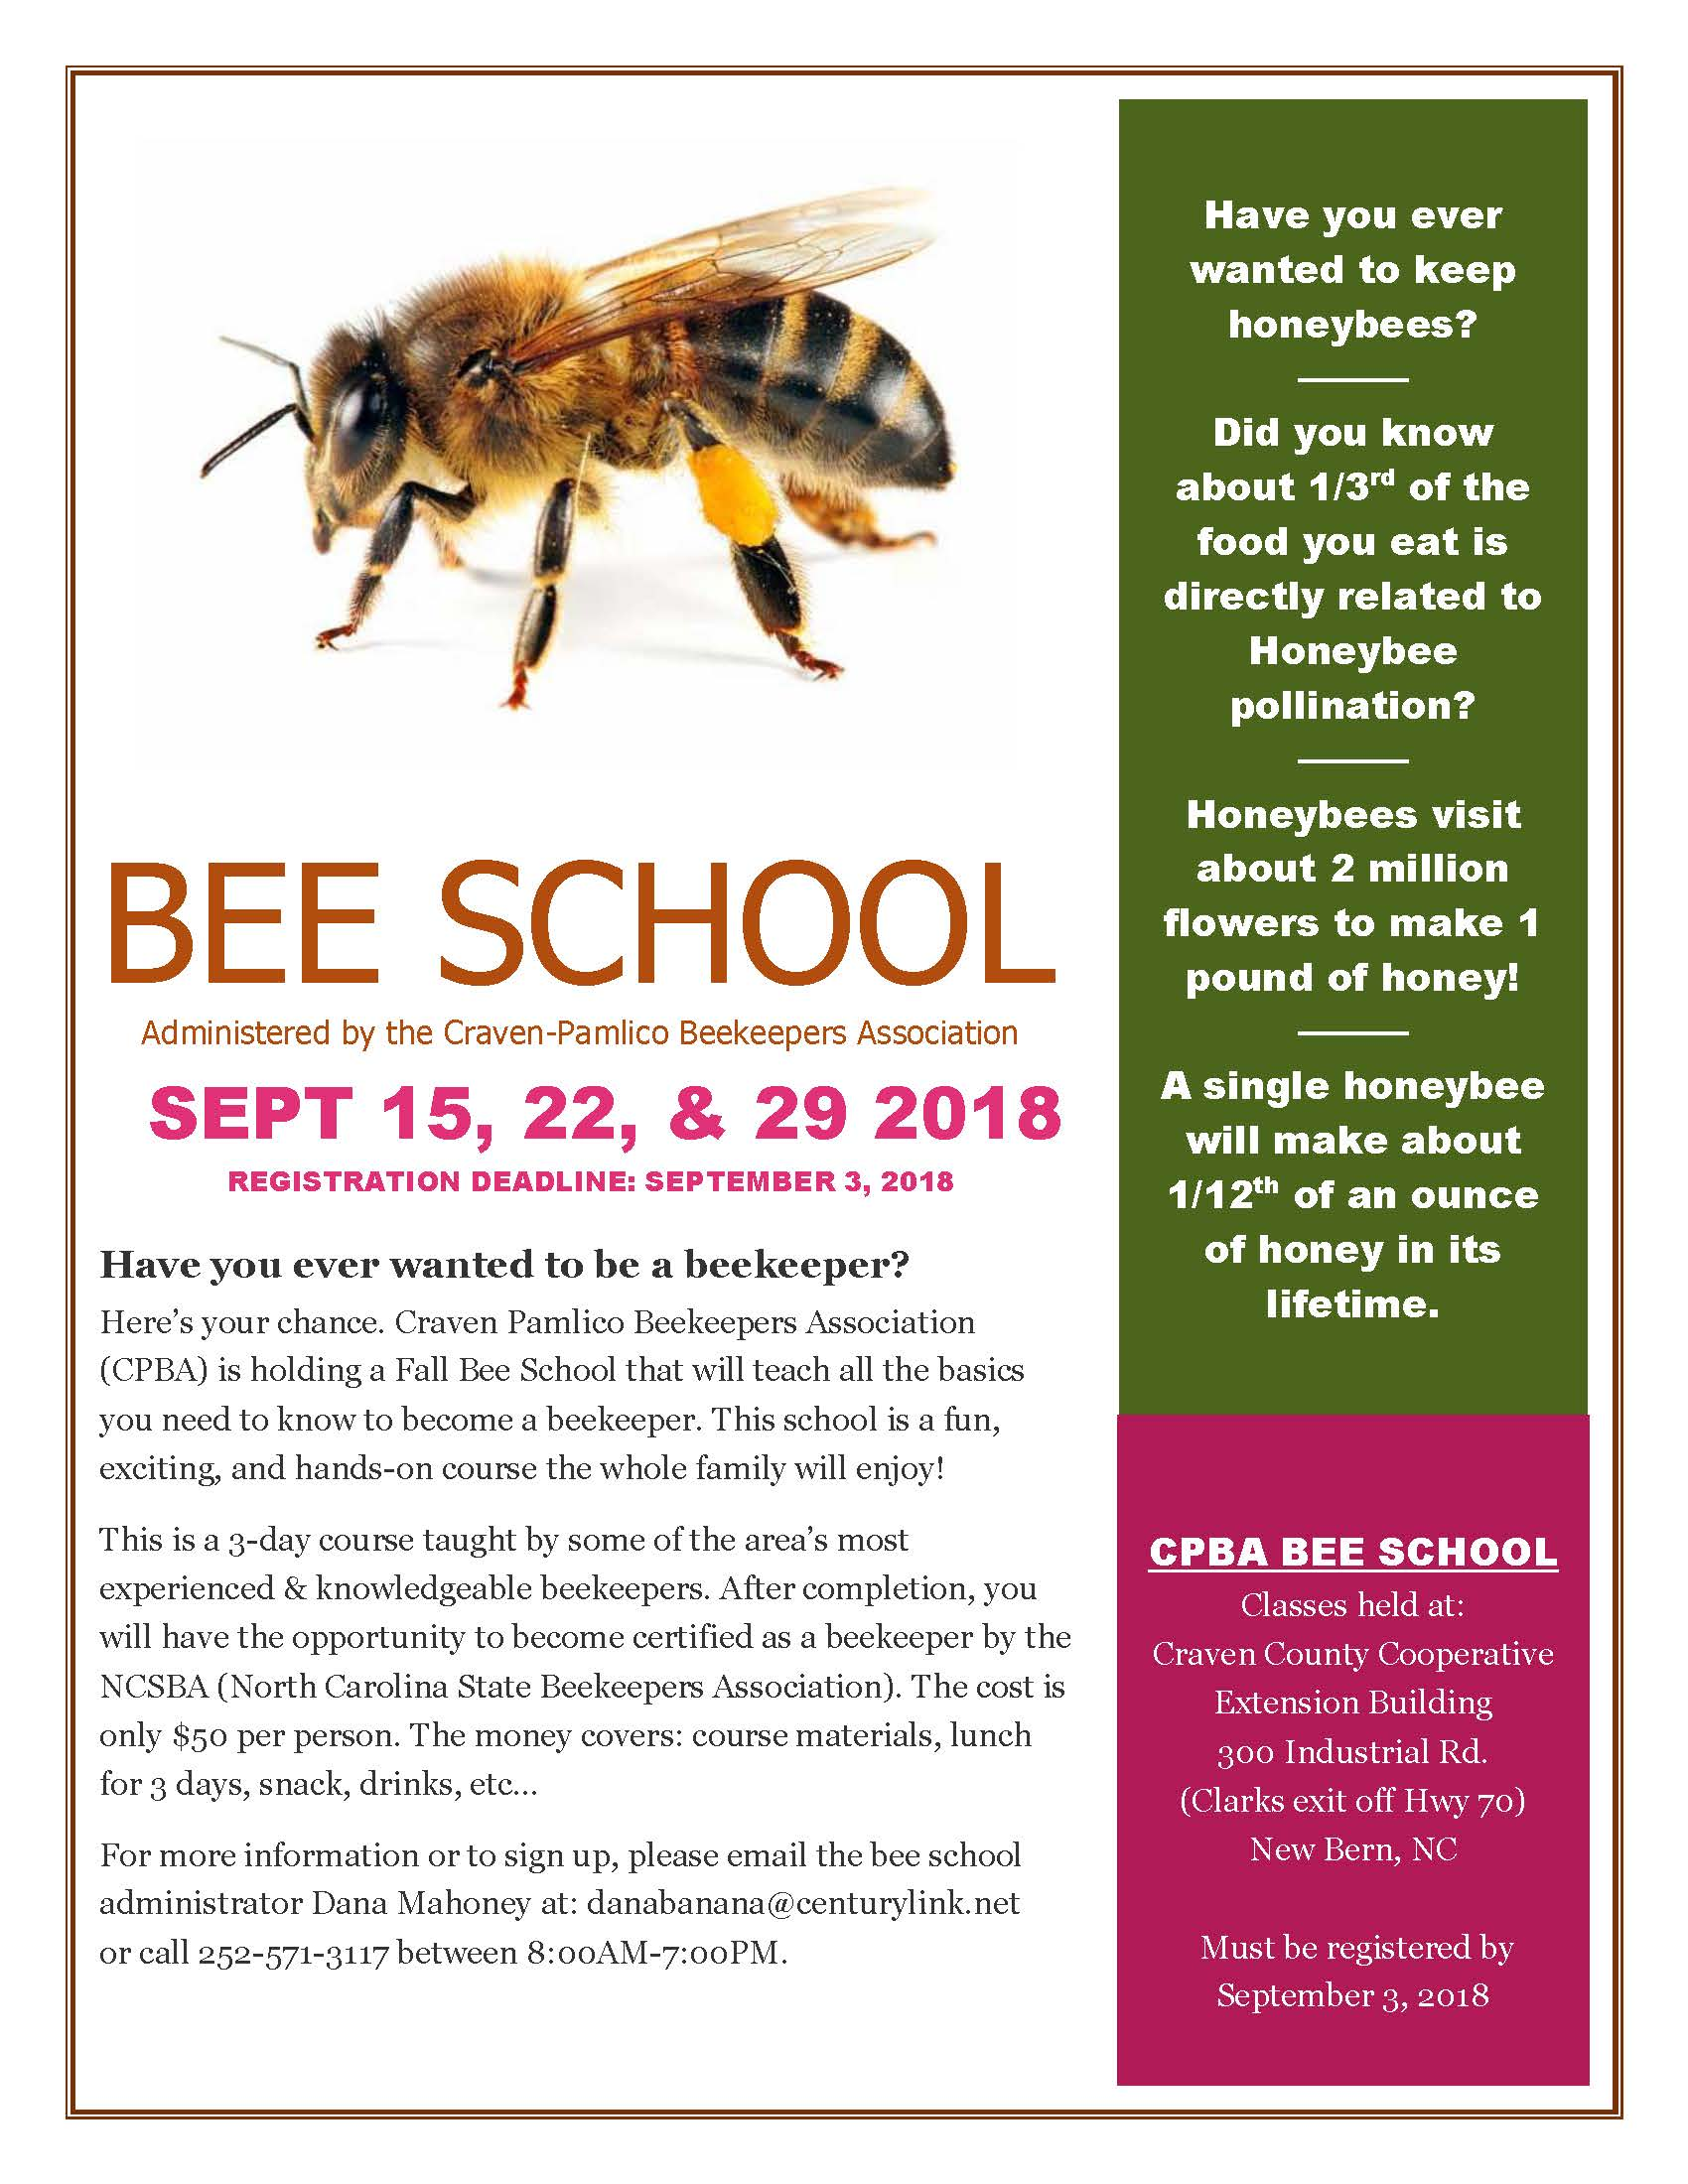 Craven-Pamlico Beekeepers Association Bee School